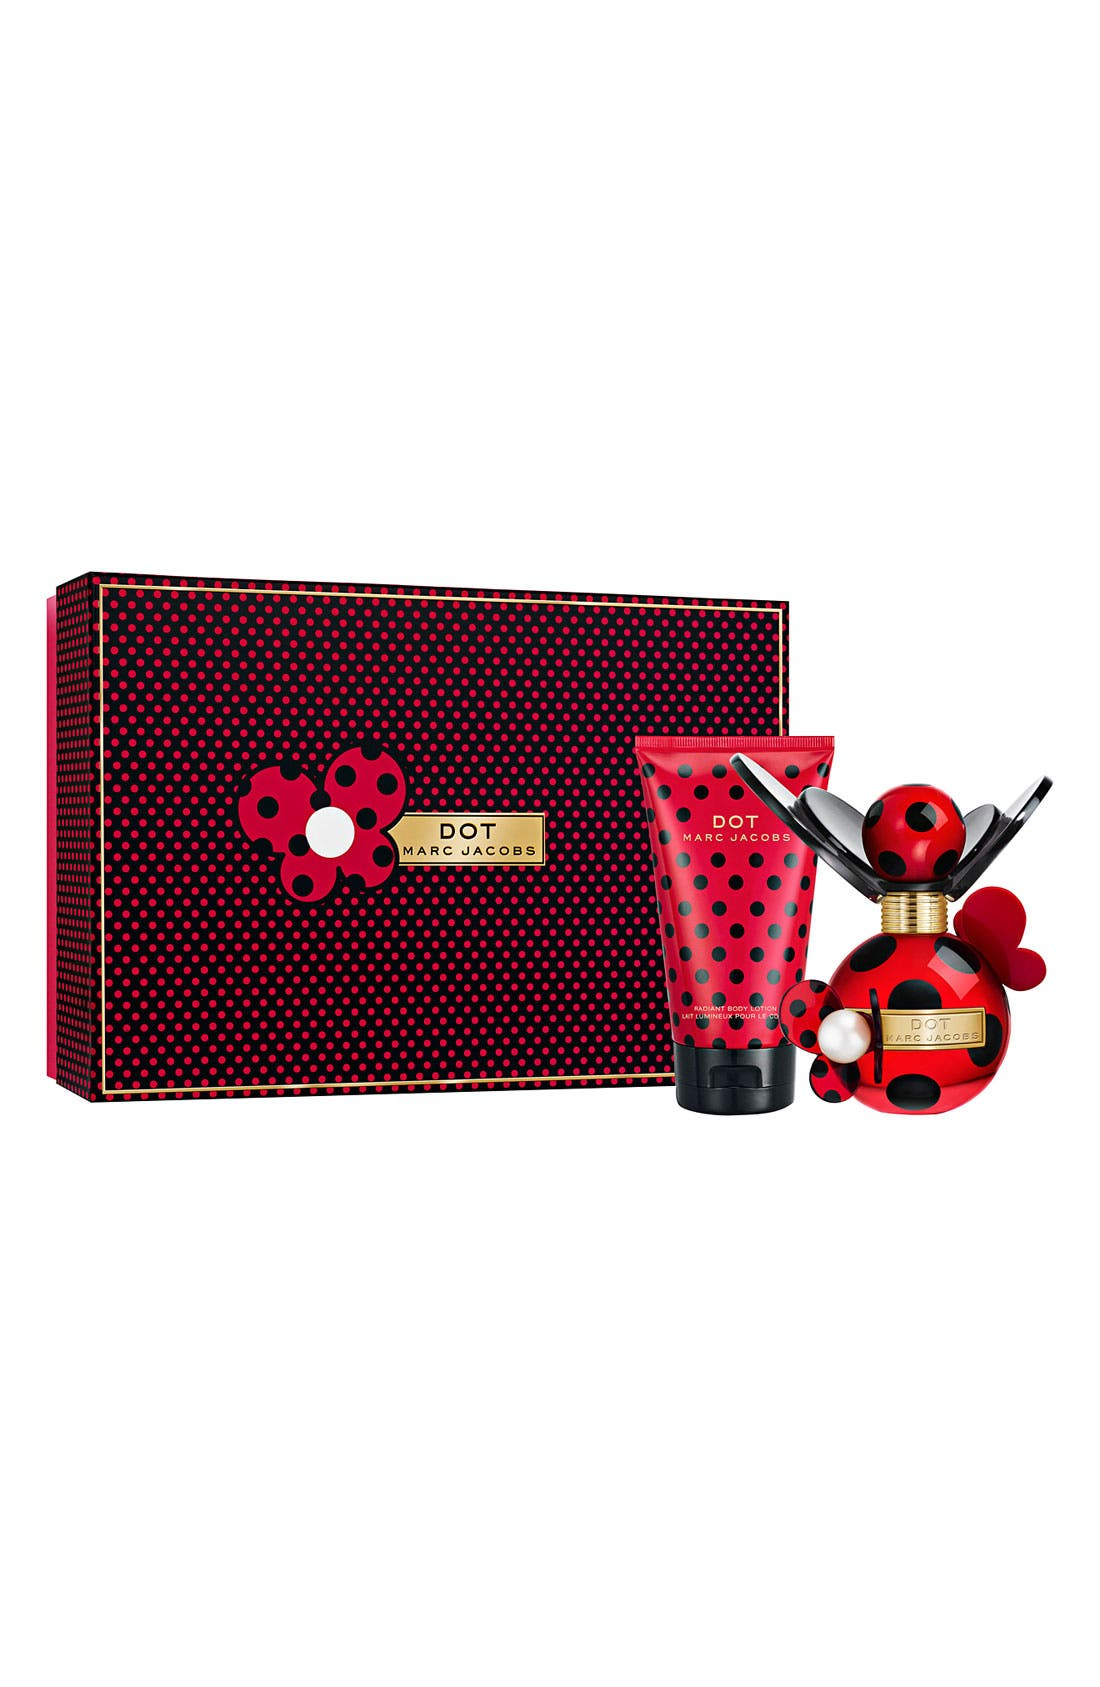 'Dot' Fragrance Set,                             Main thumbnail 1, color,                             000